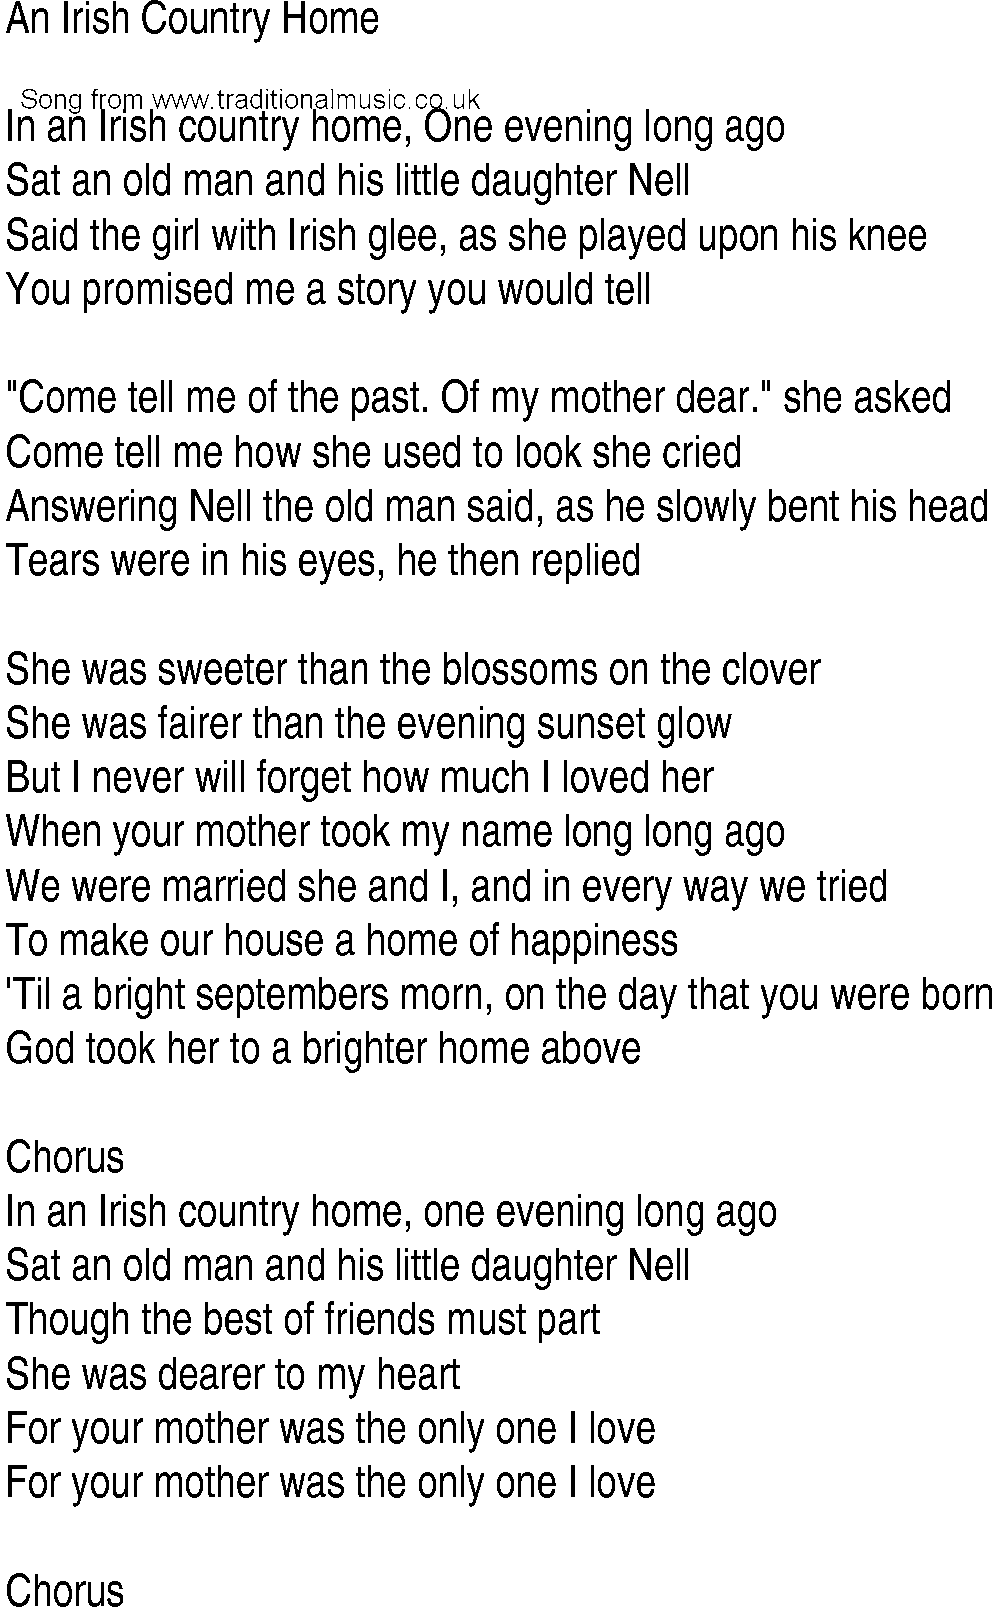 Irish music song and ballad lyrics for an irish country home for House of tracks